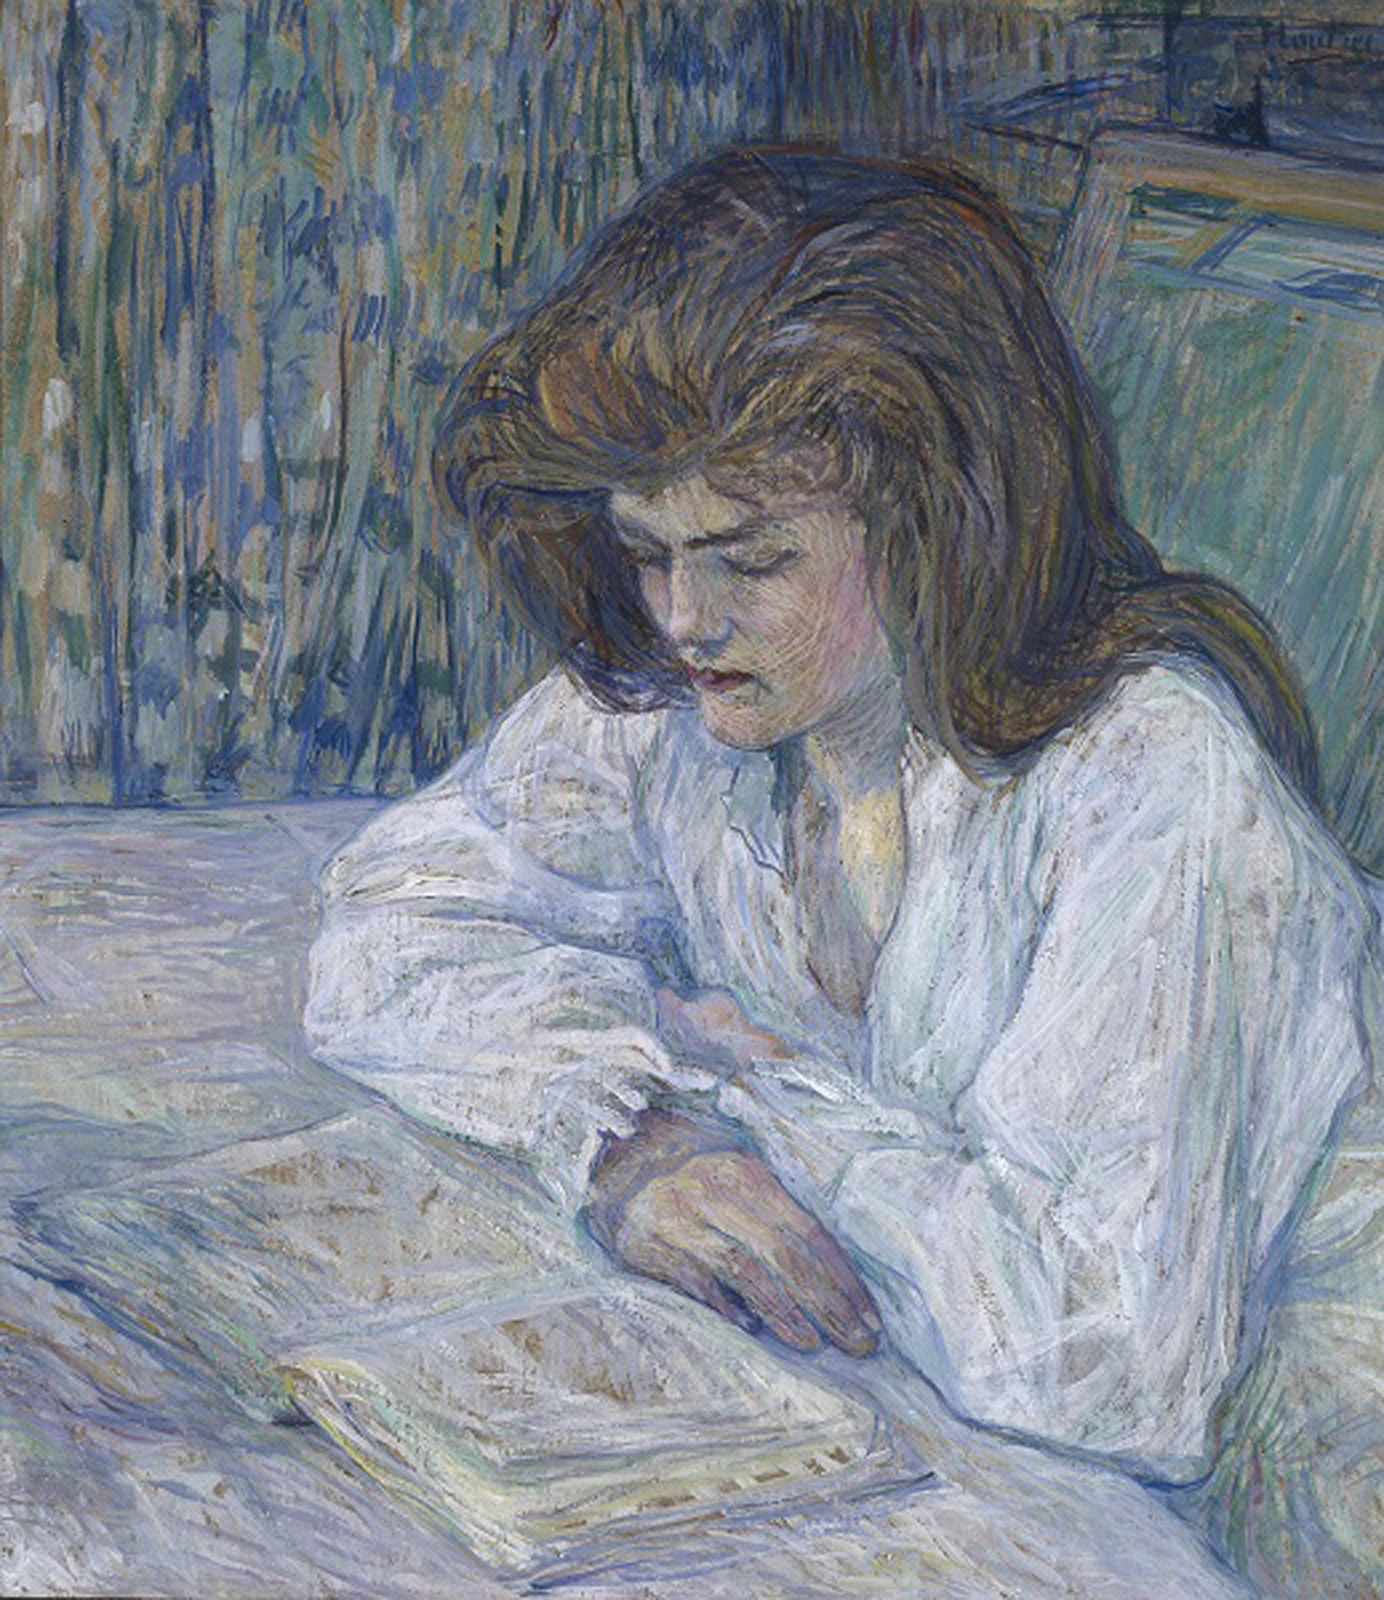 """La Liseuse"", 1889 de Henri de Toulouse-Lautrec - Courtesy Collection Alicia KOPLOWITZ - Grupo Omega Capital"